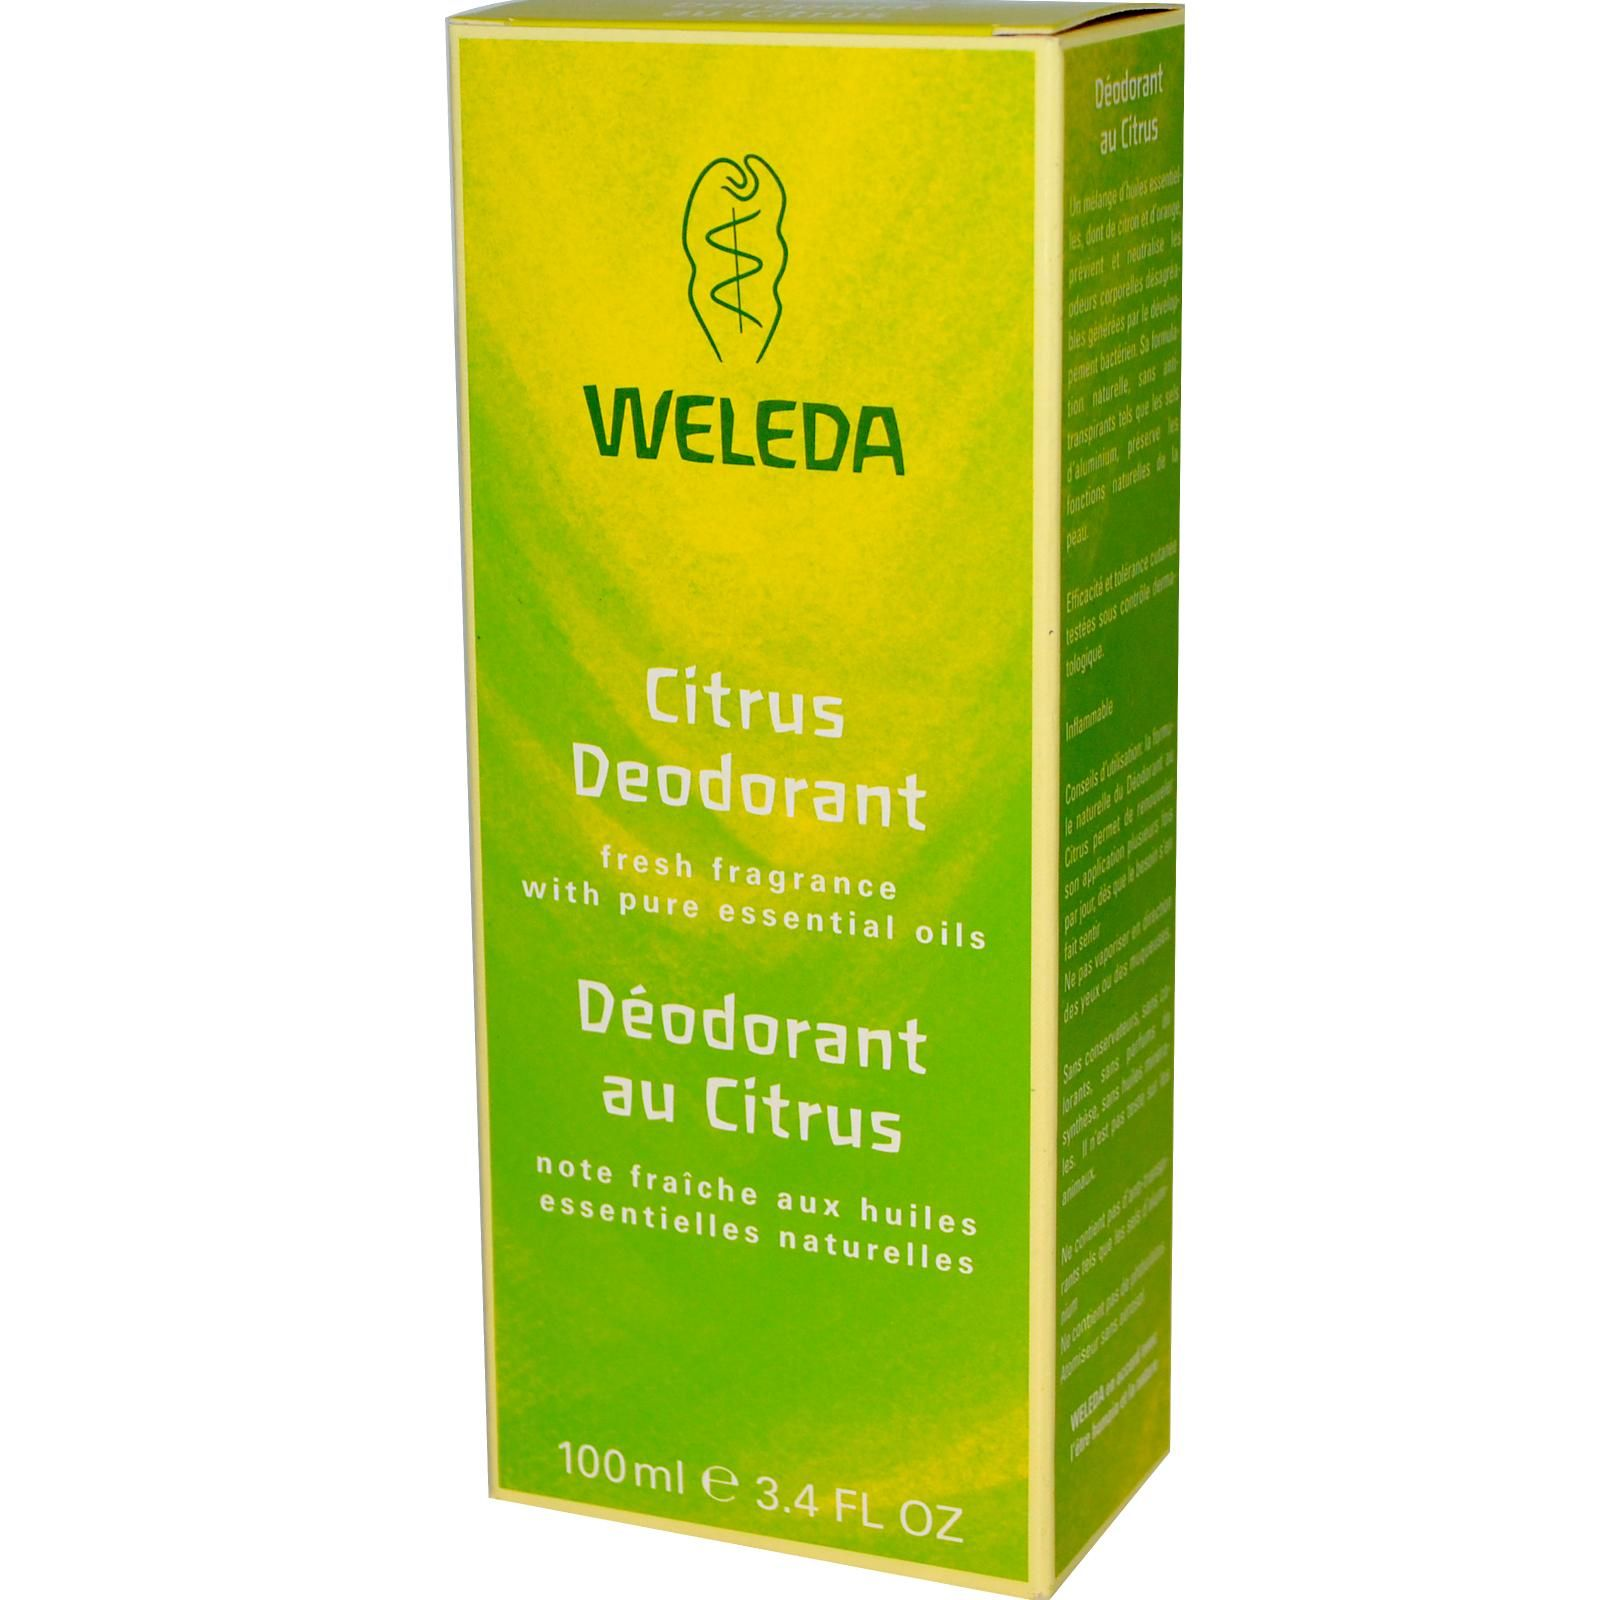 Good DEODORANT --- Free from anti-perspirants such as Aluminum salts. Free from Phthalate. Free from propellants. Free from synthetic additives including fragrance, color or preservatives. --- Weleda, Citrus Deodorant, 3.4 fl oz (100 ml)